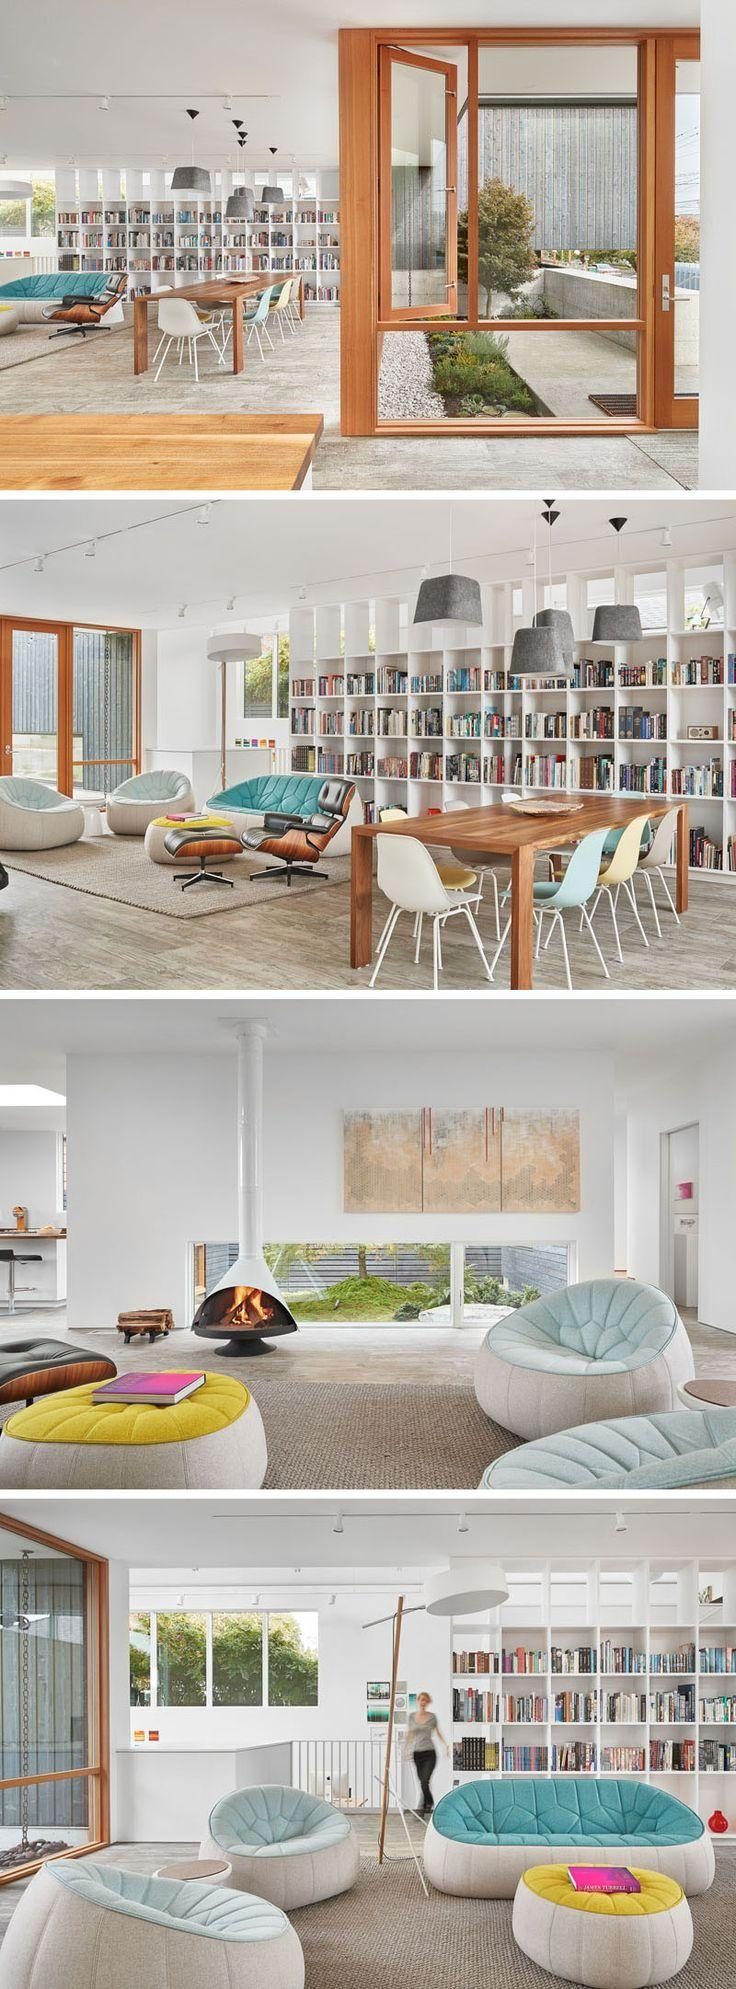 Best 25+ Comfortable Sofa Ideas On Pinterest | Modular Living Room Pertaining To Comfortable Sofas And Chairs (View 12 of 20)